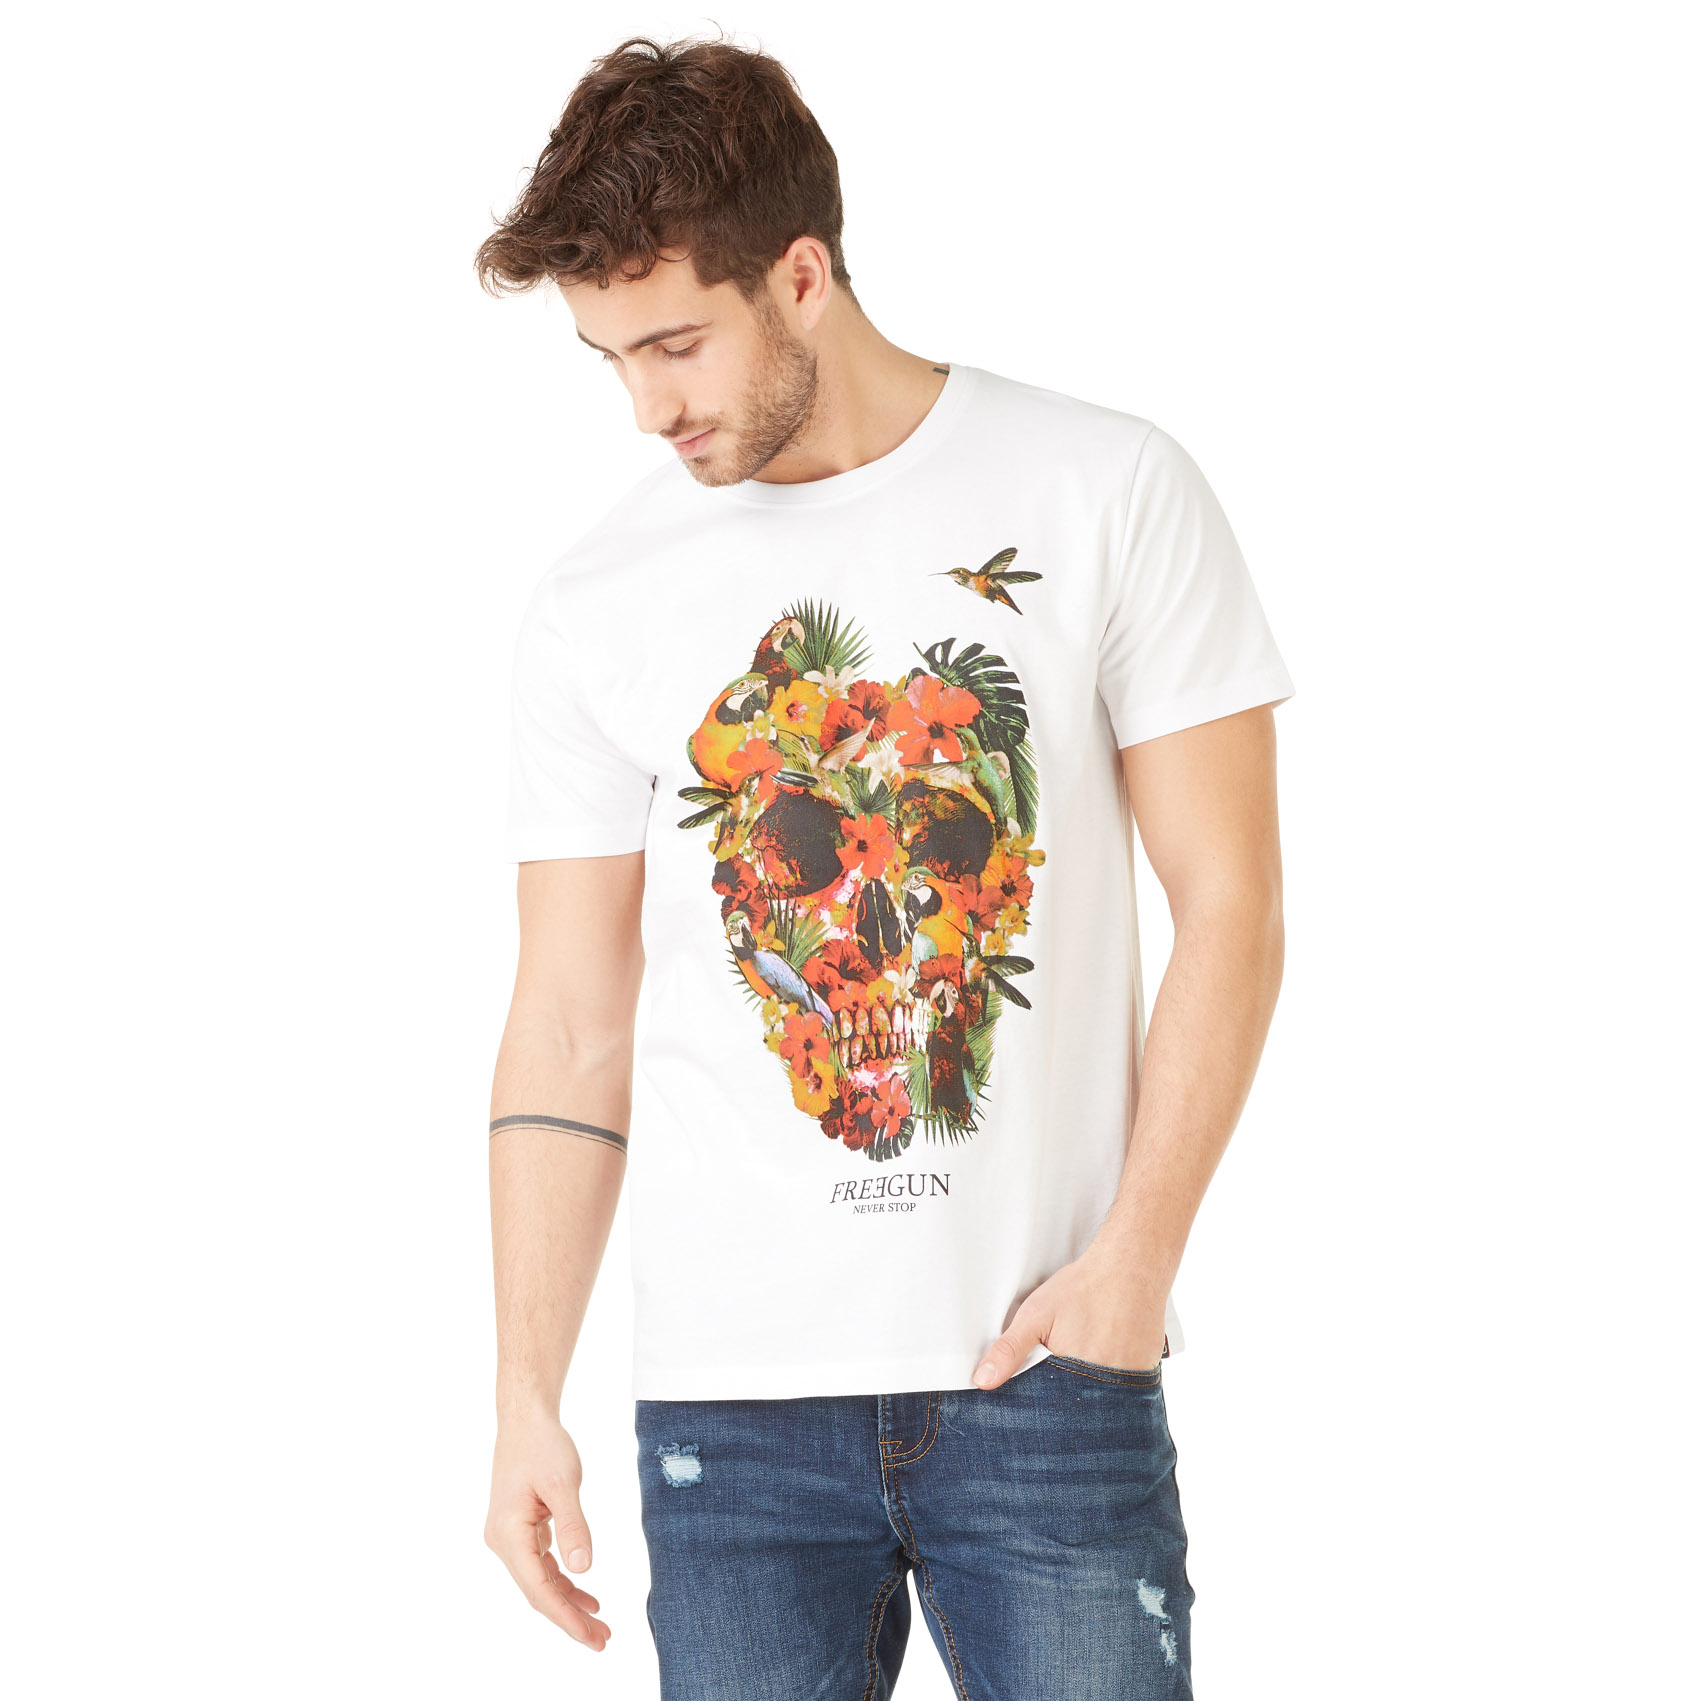 T-shirt homme freegun flowers blanc (photo)